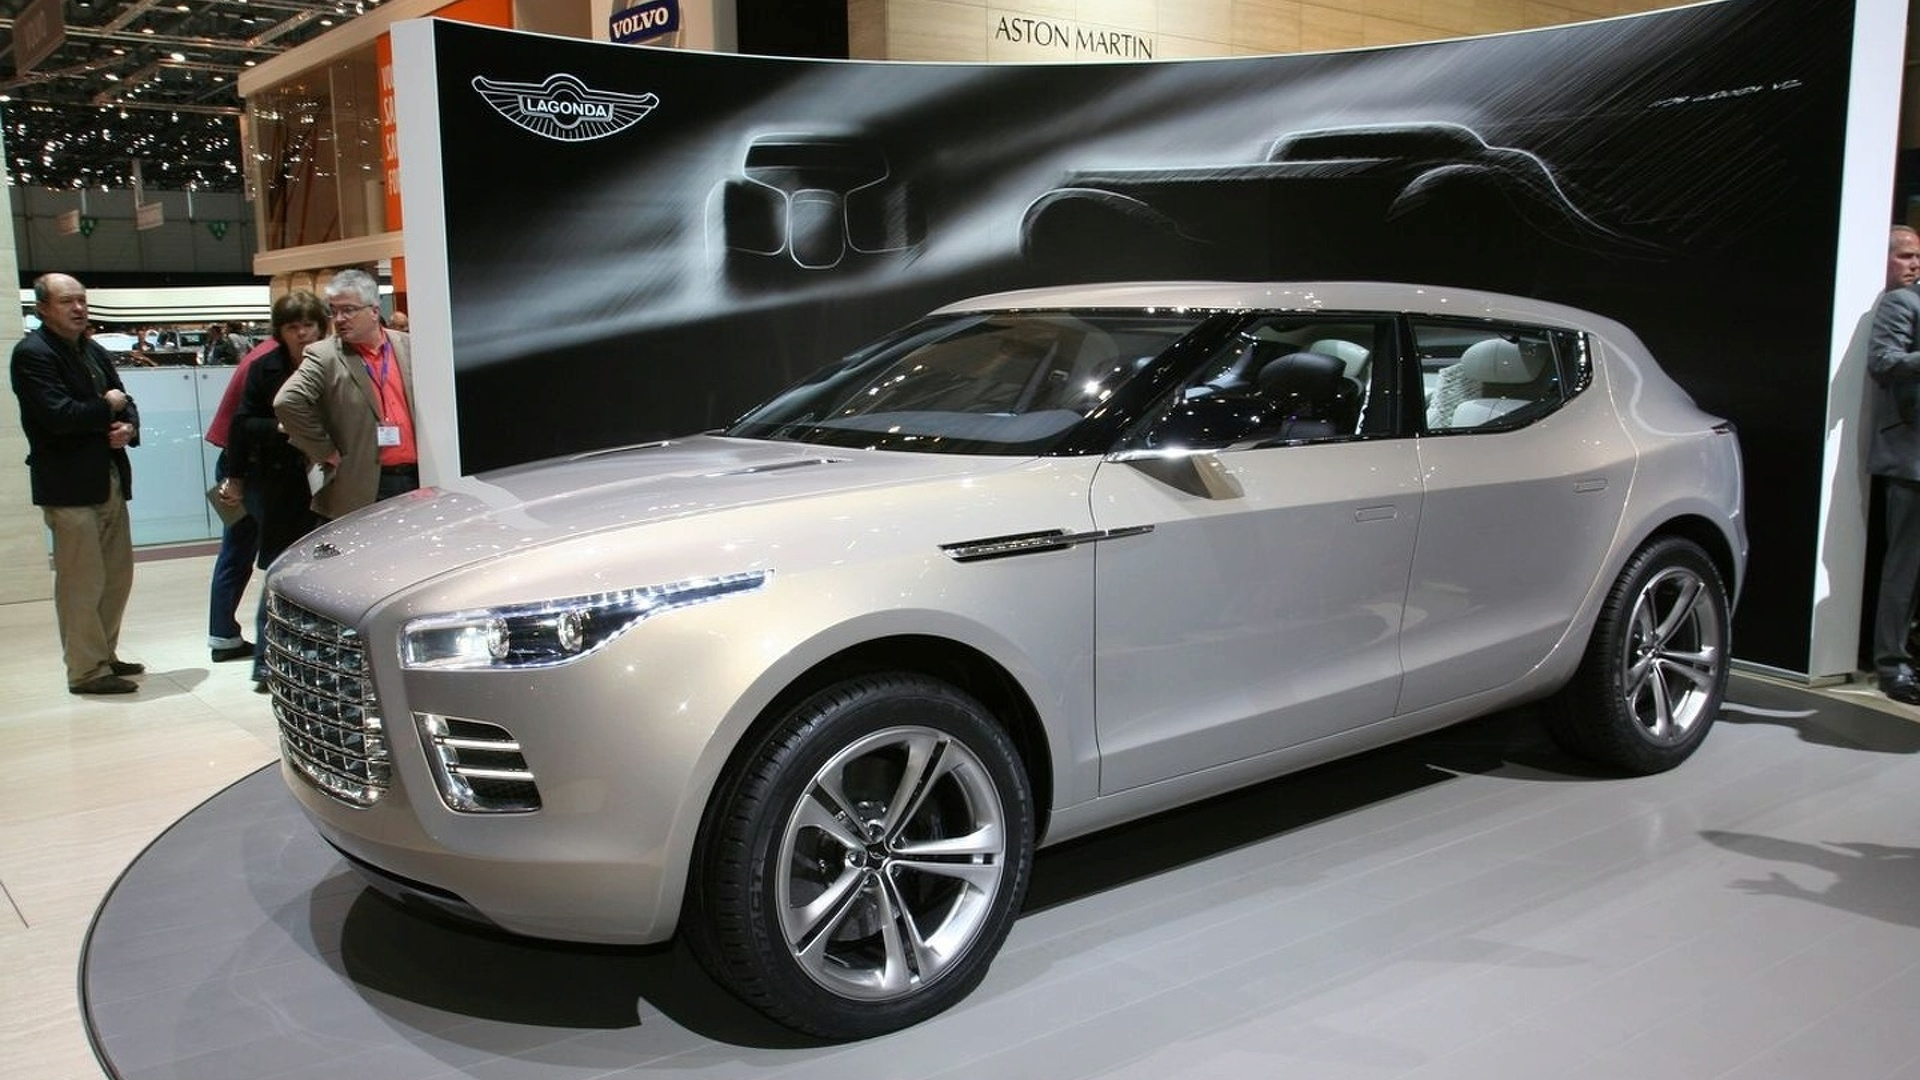 Aston Martin Lagonda Suv Could Ride On The Mercedes Benz Gl Platform